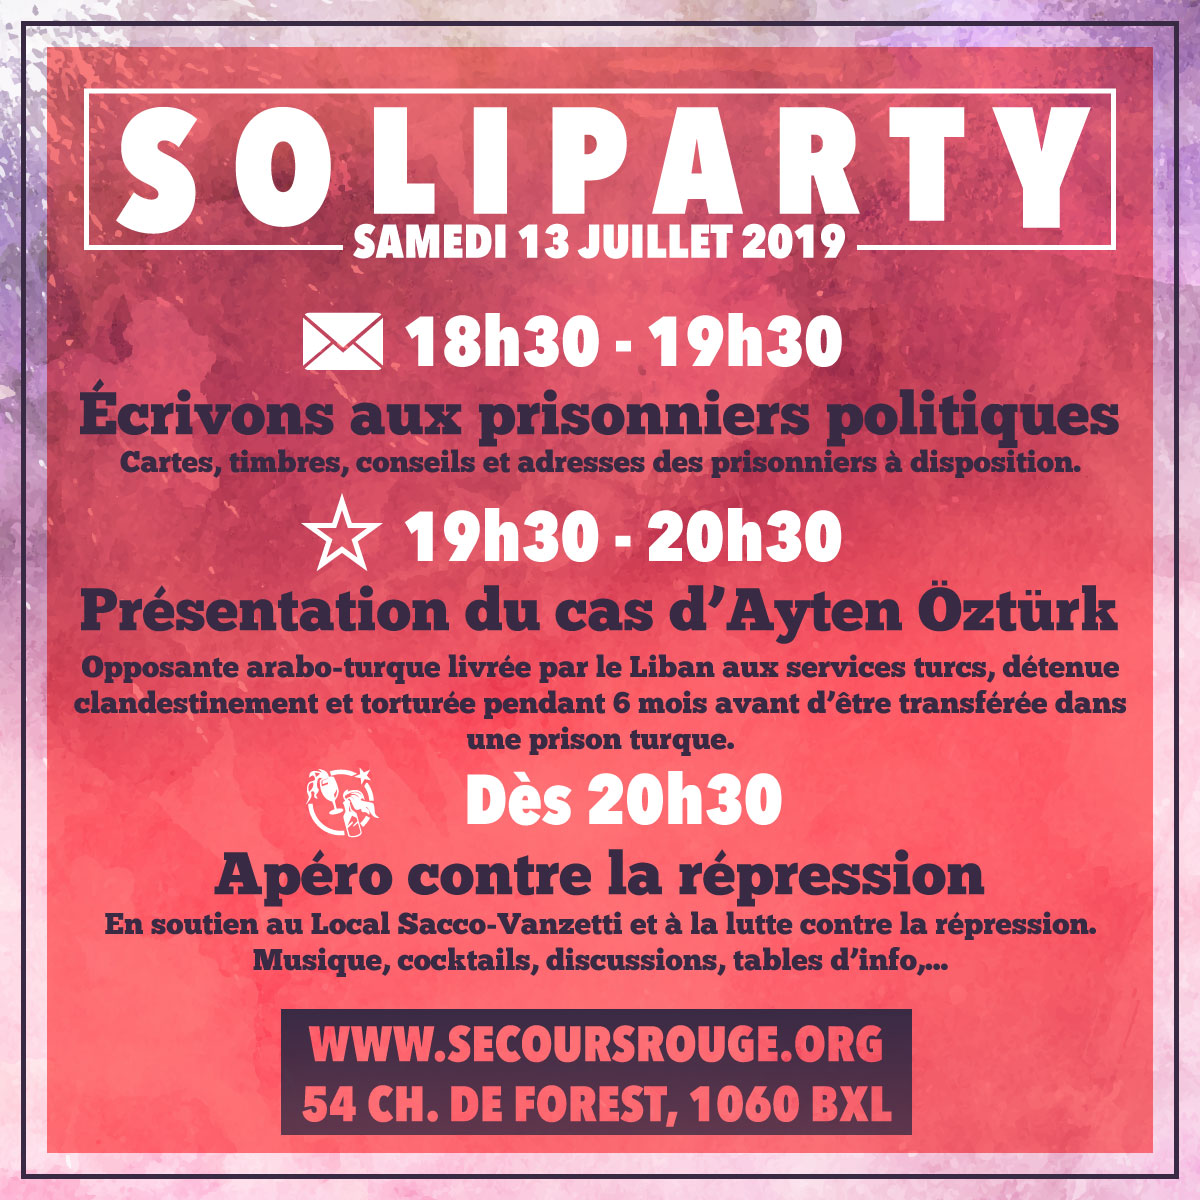 Soliparty 13 juillet